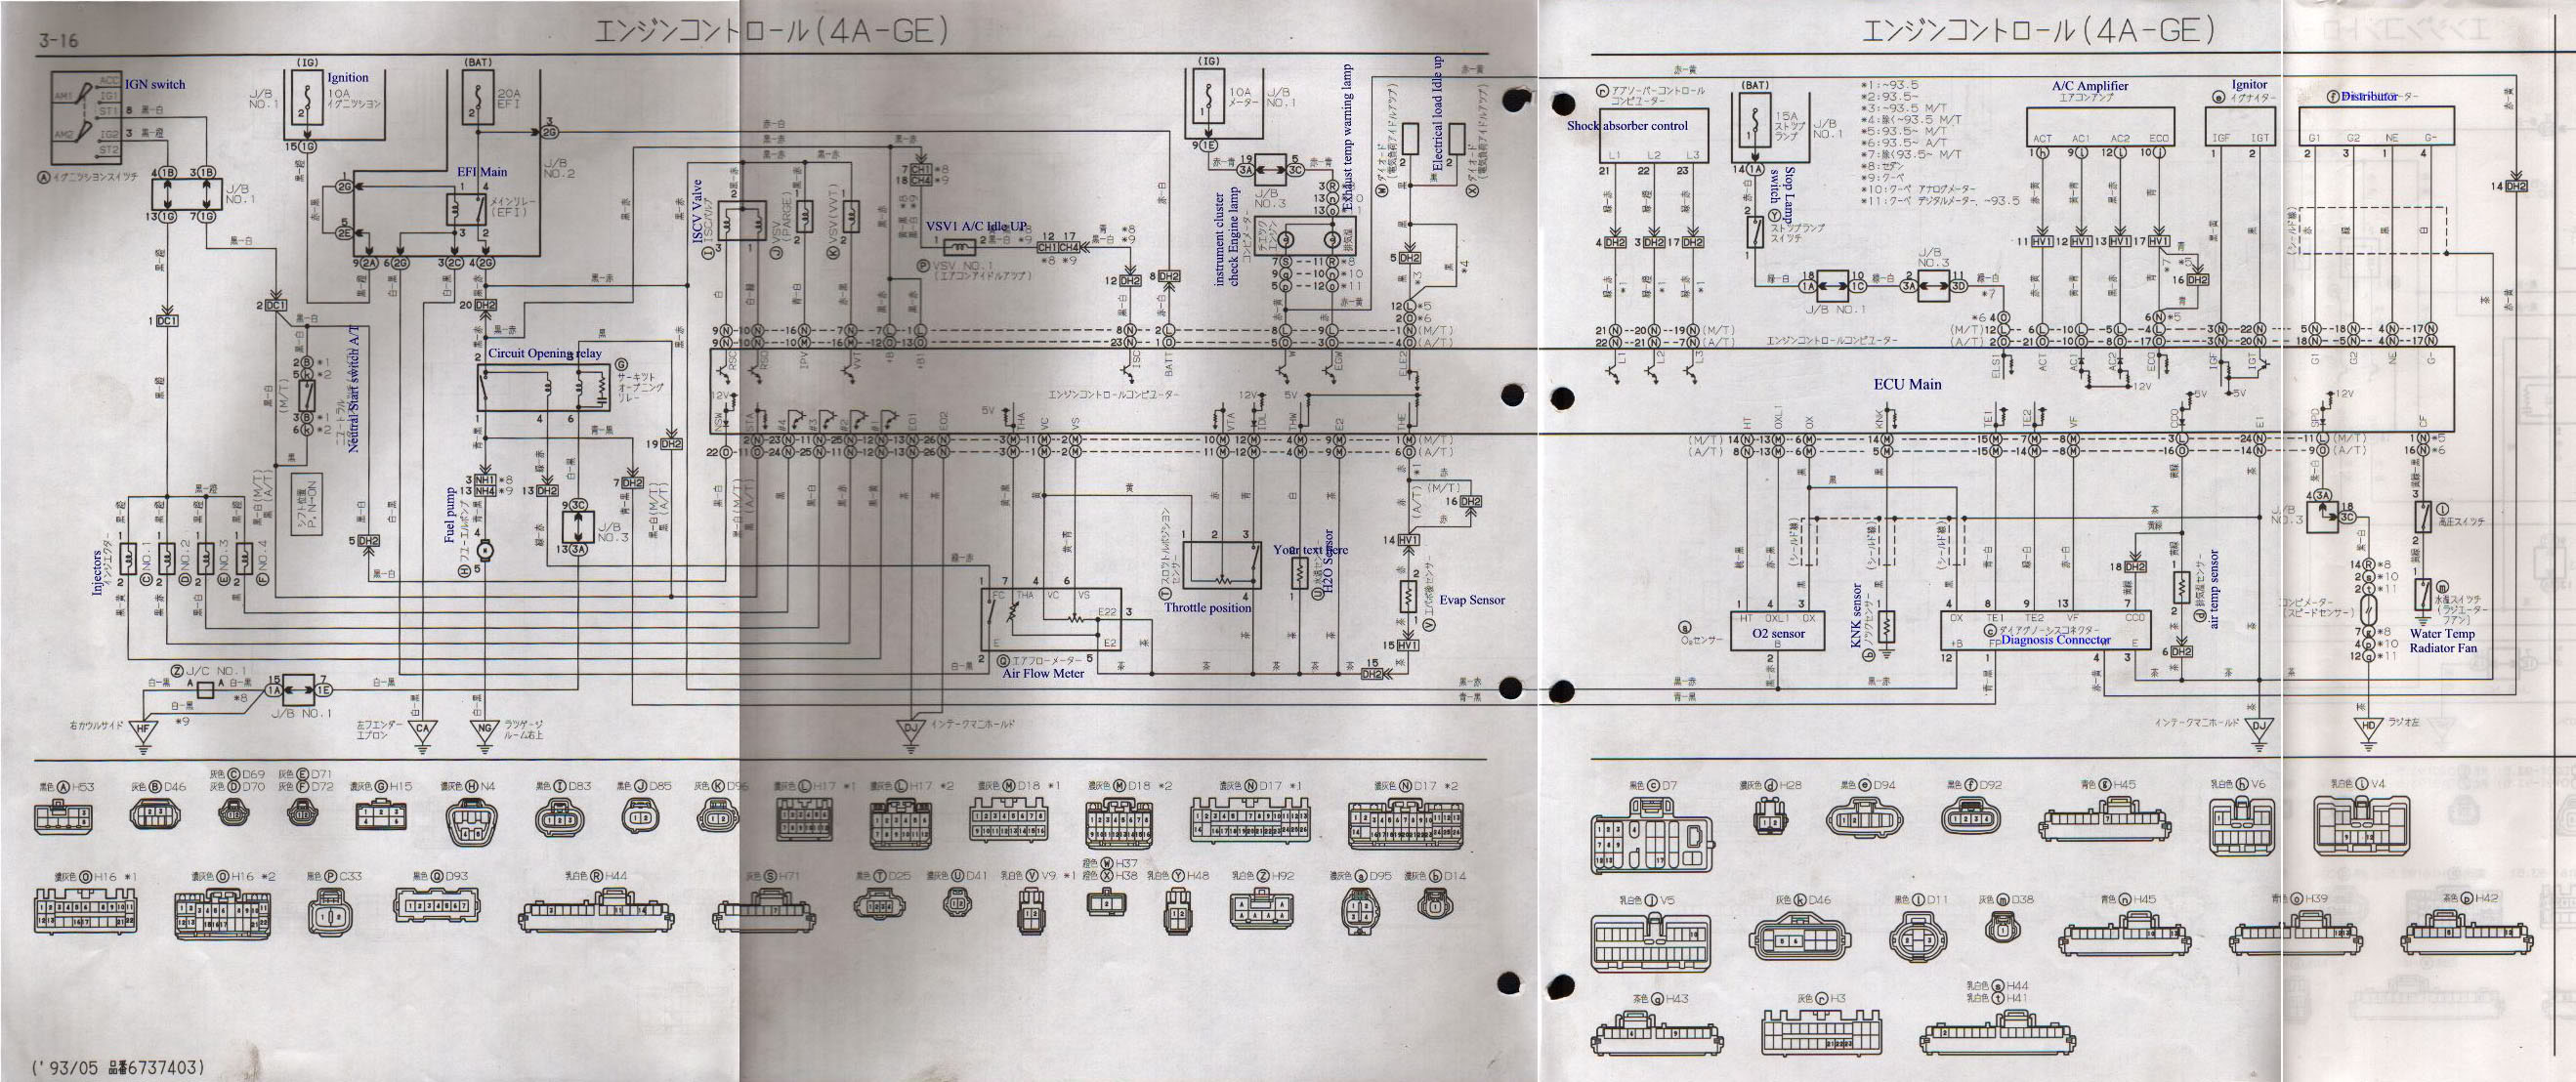 20v Wiring Diagram Schemes Toyota Supra Ecu Workshop Manuals General Information Diagrams Sq Engineering Home Electrical